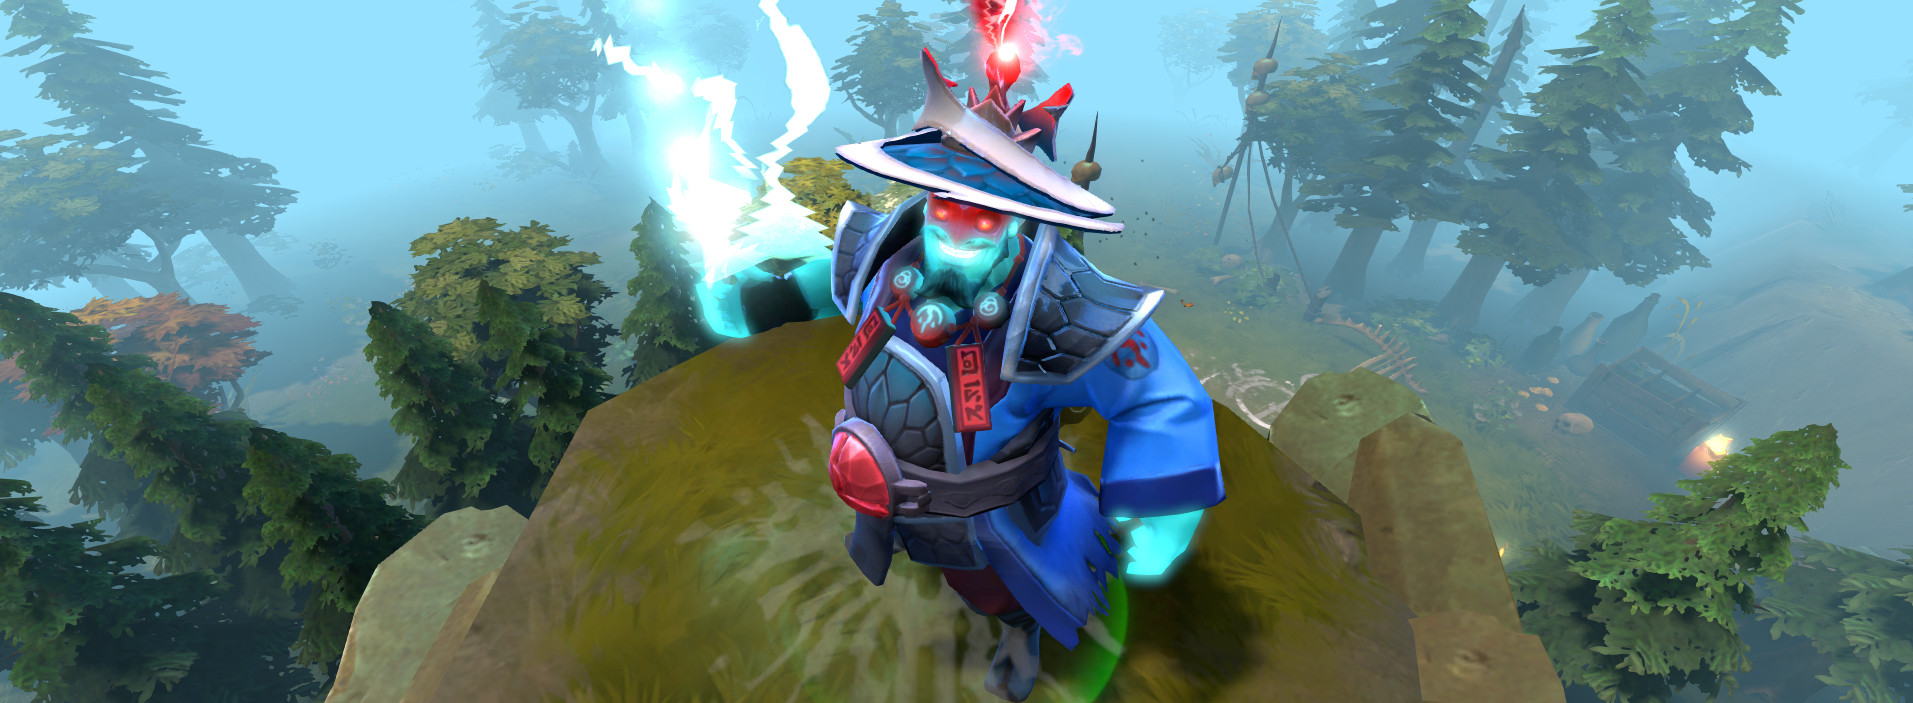 Dota 2 Immortal Items And Player Cards Released: Dota 2 Immortal (14)